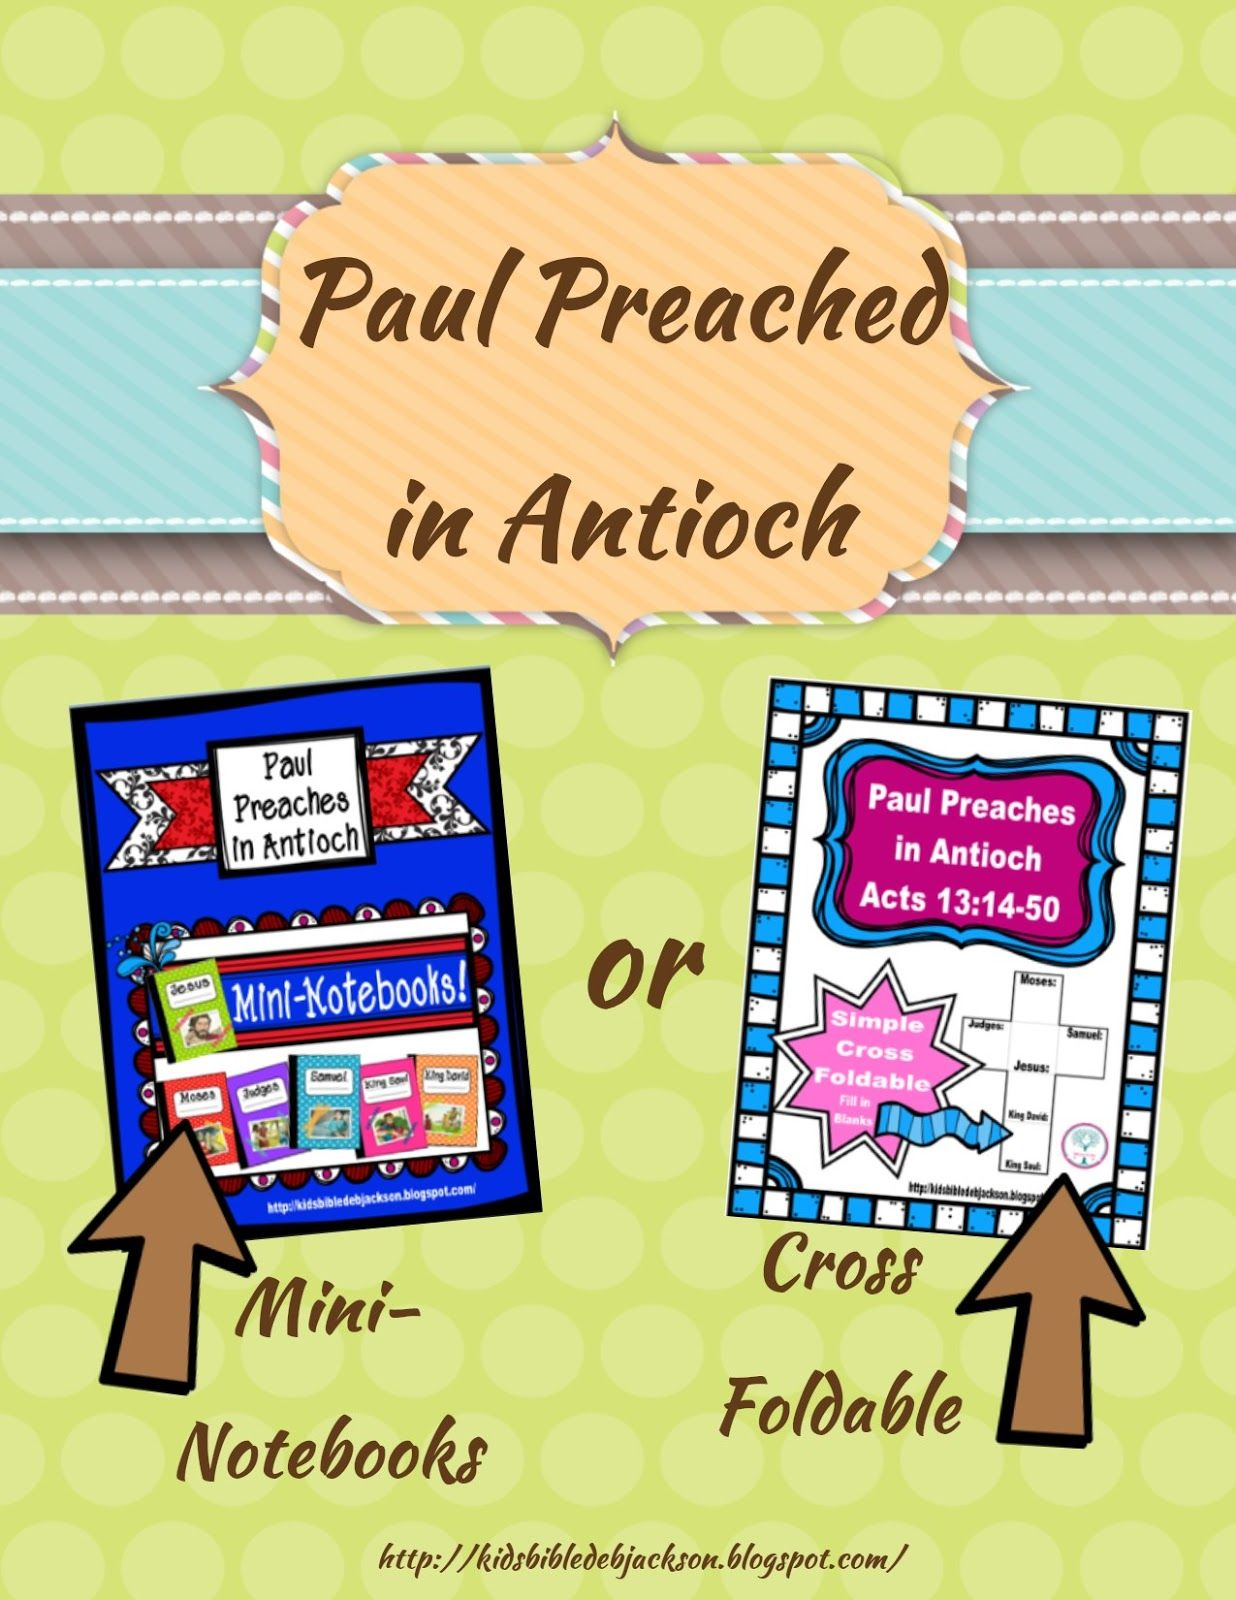 Paul Preaches In Antioch